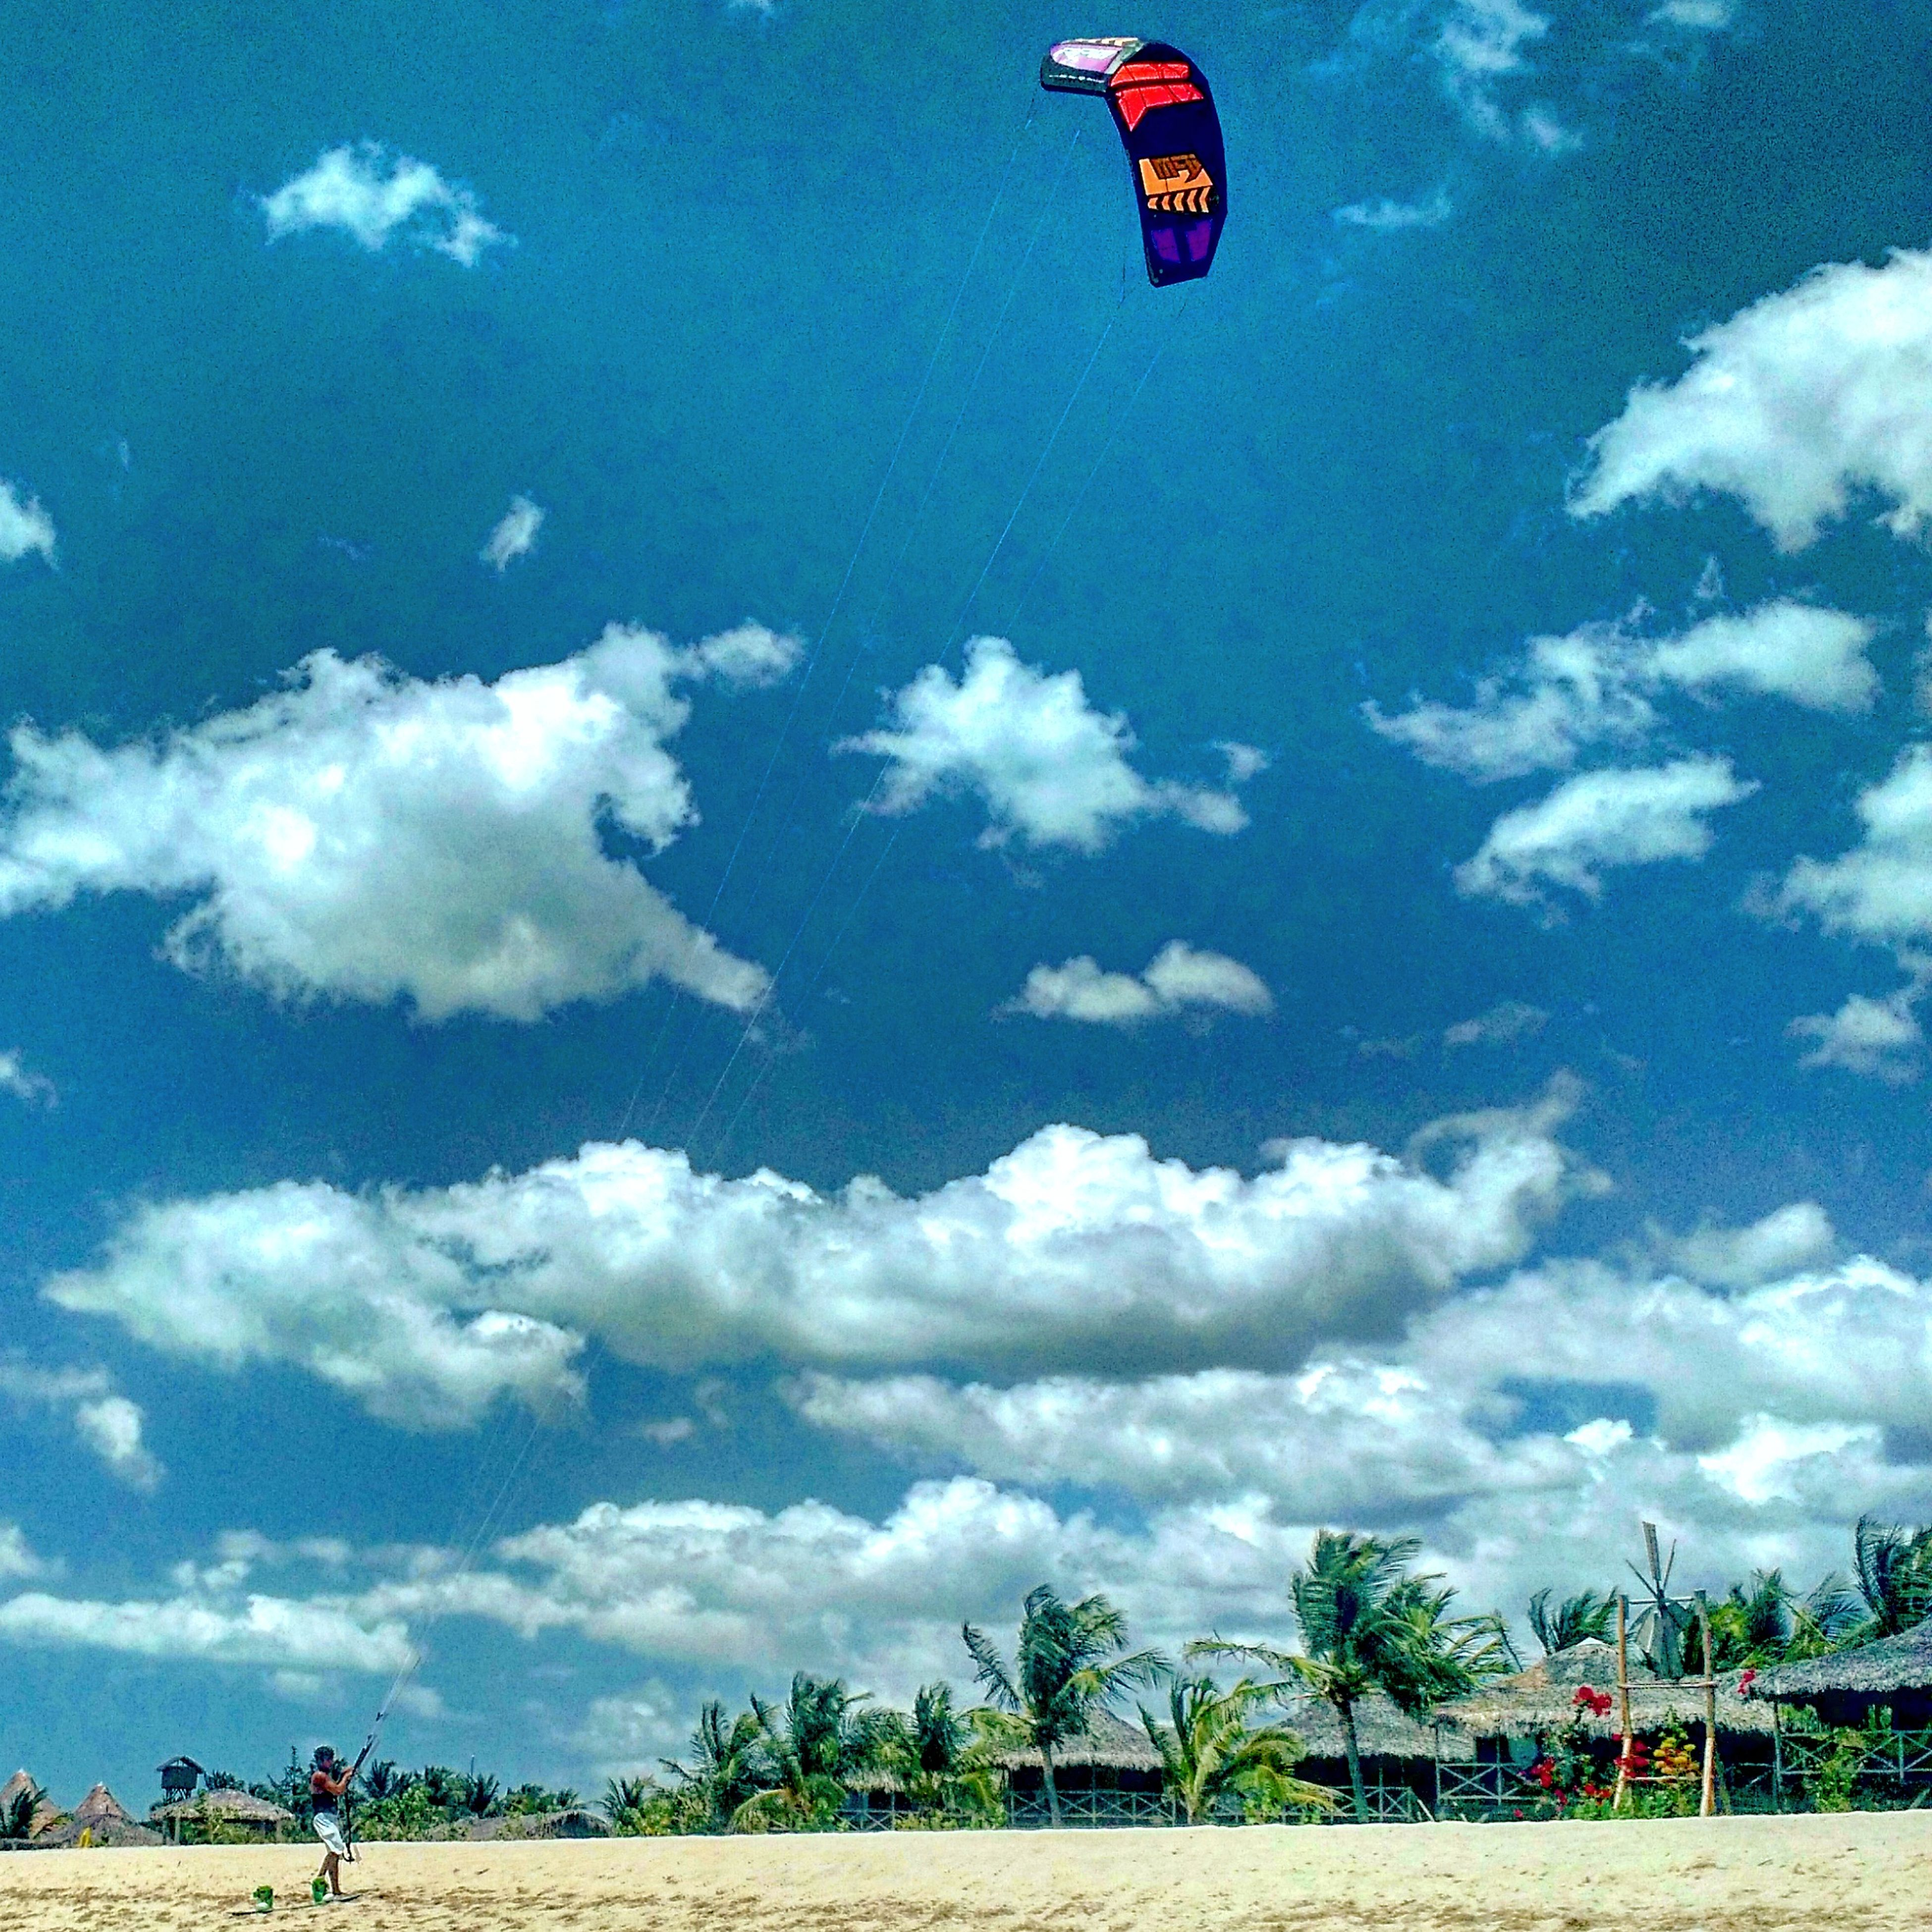 transportation, sky, mode of transport, leisure activity, cloud - sky, mid-air, lifestyles, flying, sport, men, travel, day, cloud, parachute, adventure, tree, extreme sports, vacations, incidental people